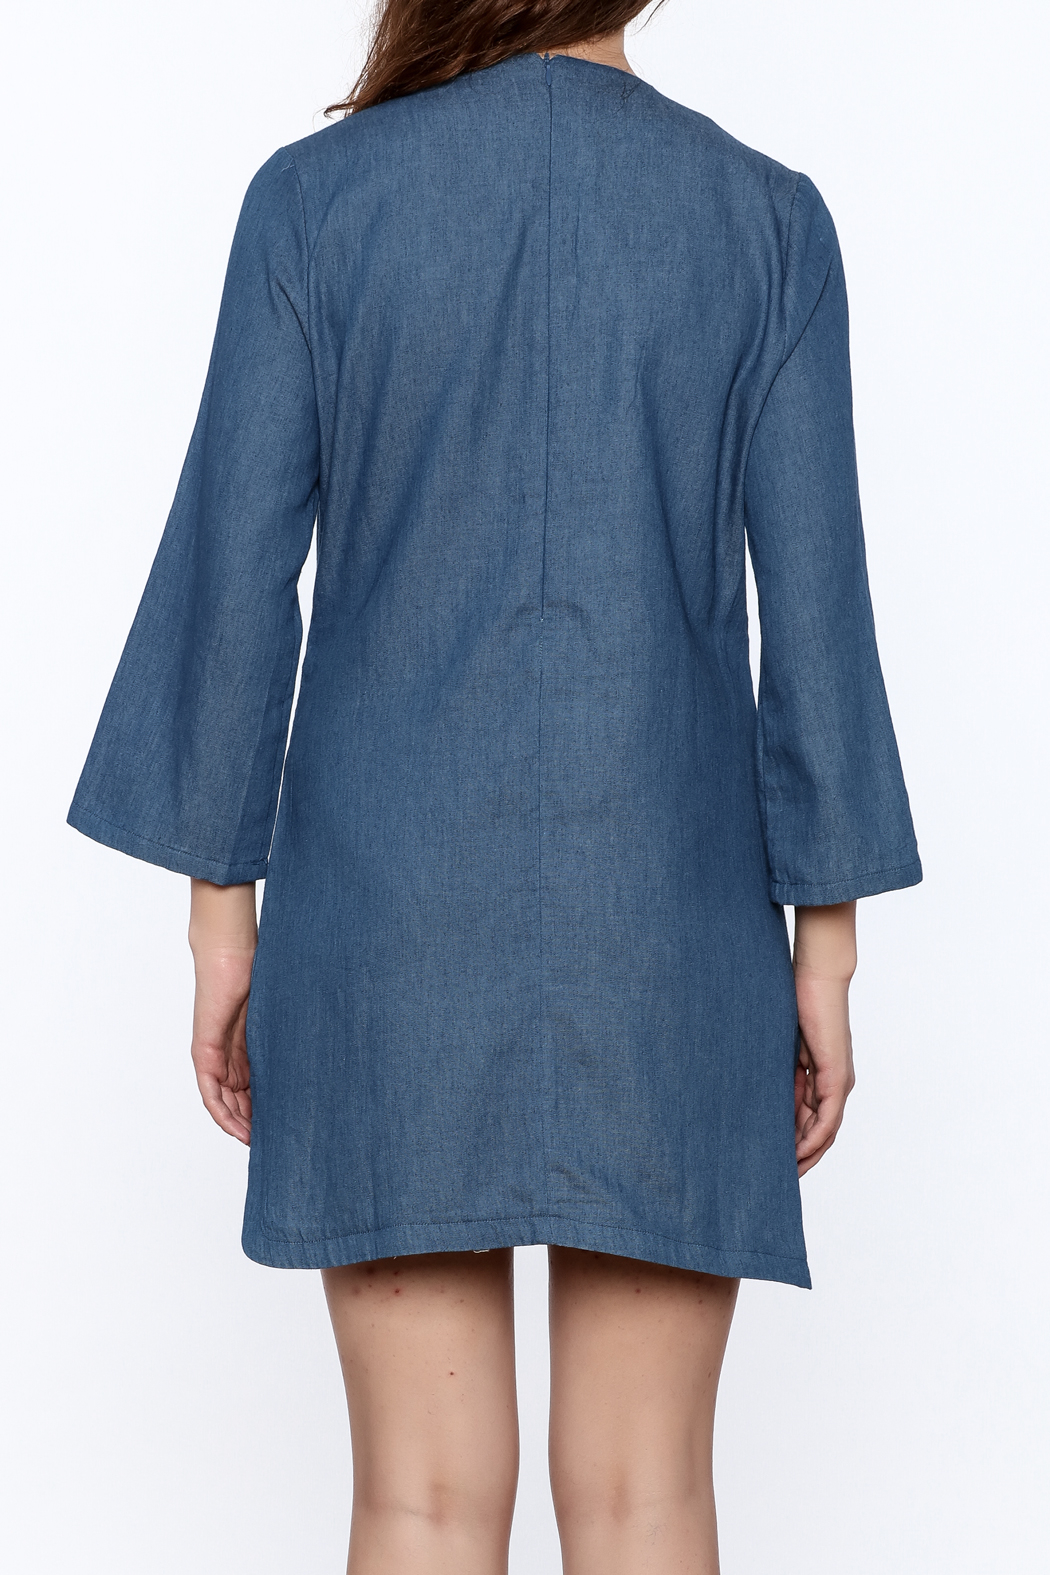 Endless Rose Denim Shift Dress - Back Cropped Image